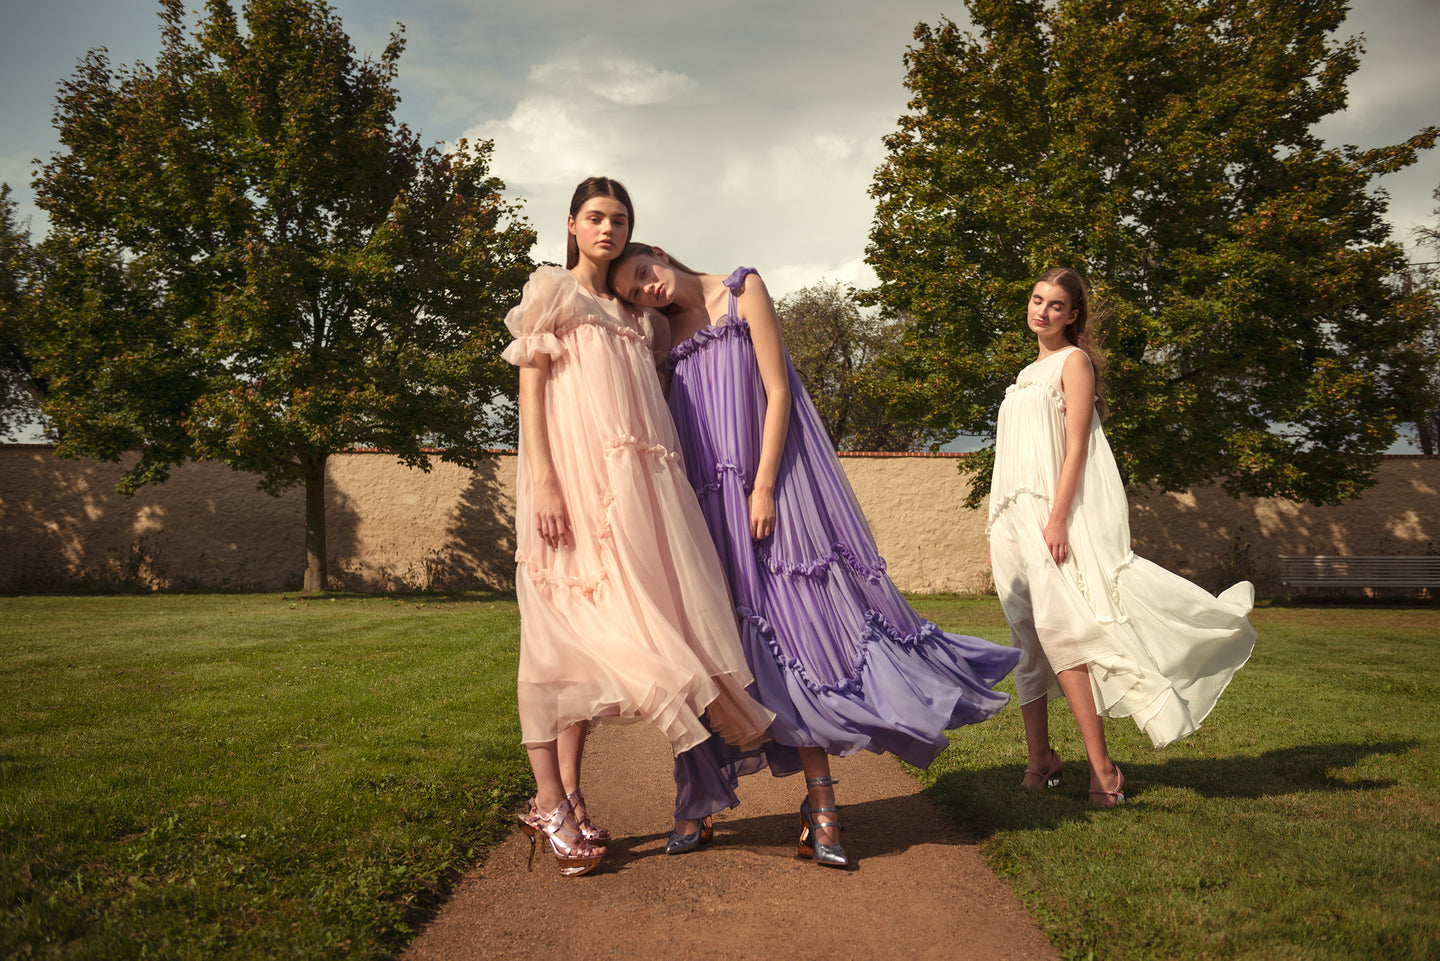 2 GIRLS DRESSED IN SILK ORGANZA, VOILE AND CHIFFON GIRLISH DRESSES FLATTERING IN THE WIND. A KEY VISUAL OF A NEW NANICHE COLLECTION NYMPHAE SS2021